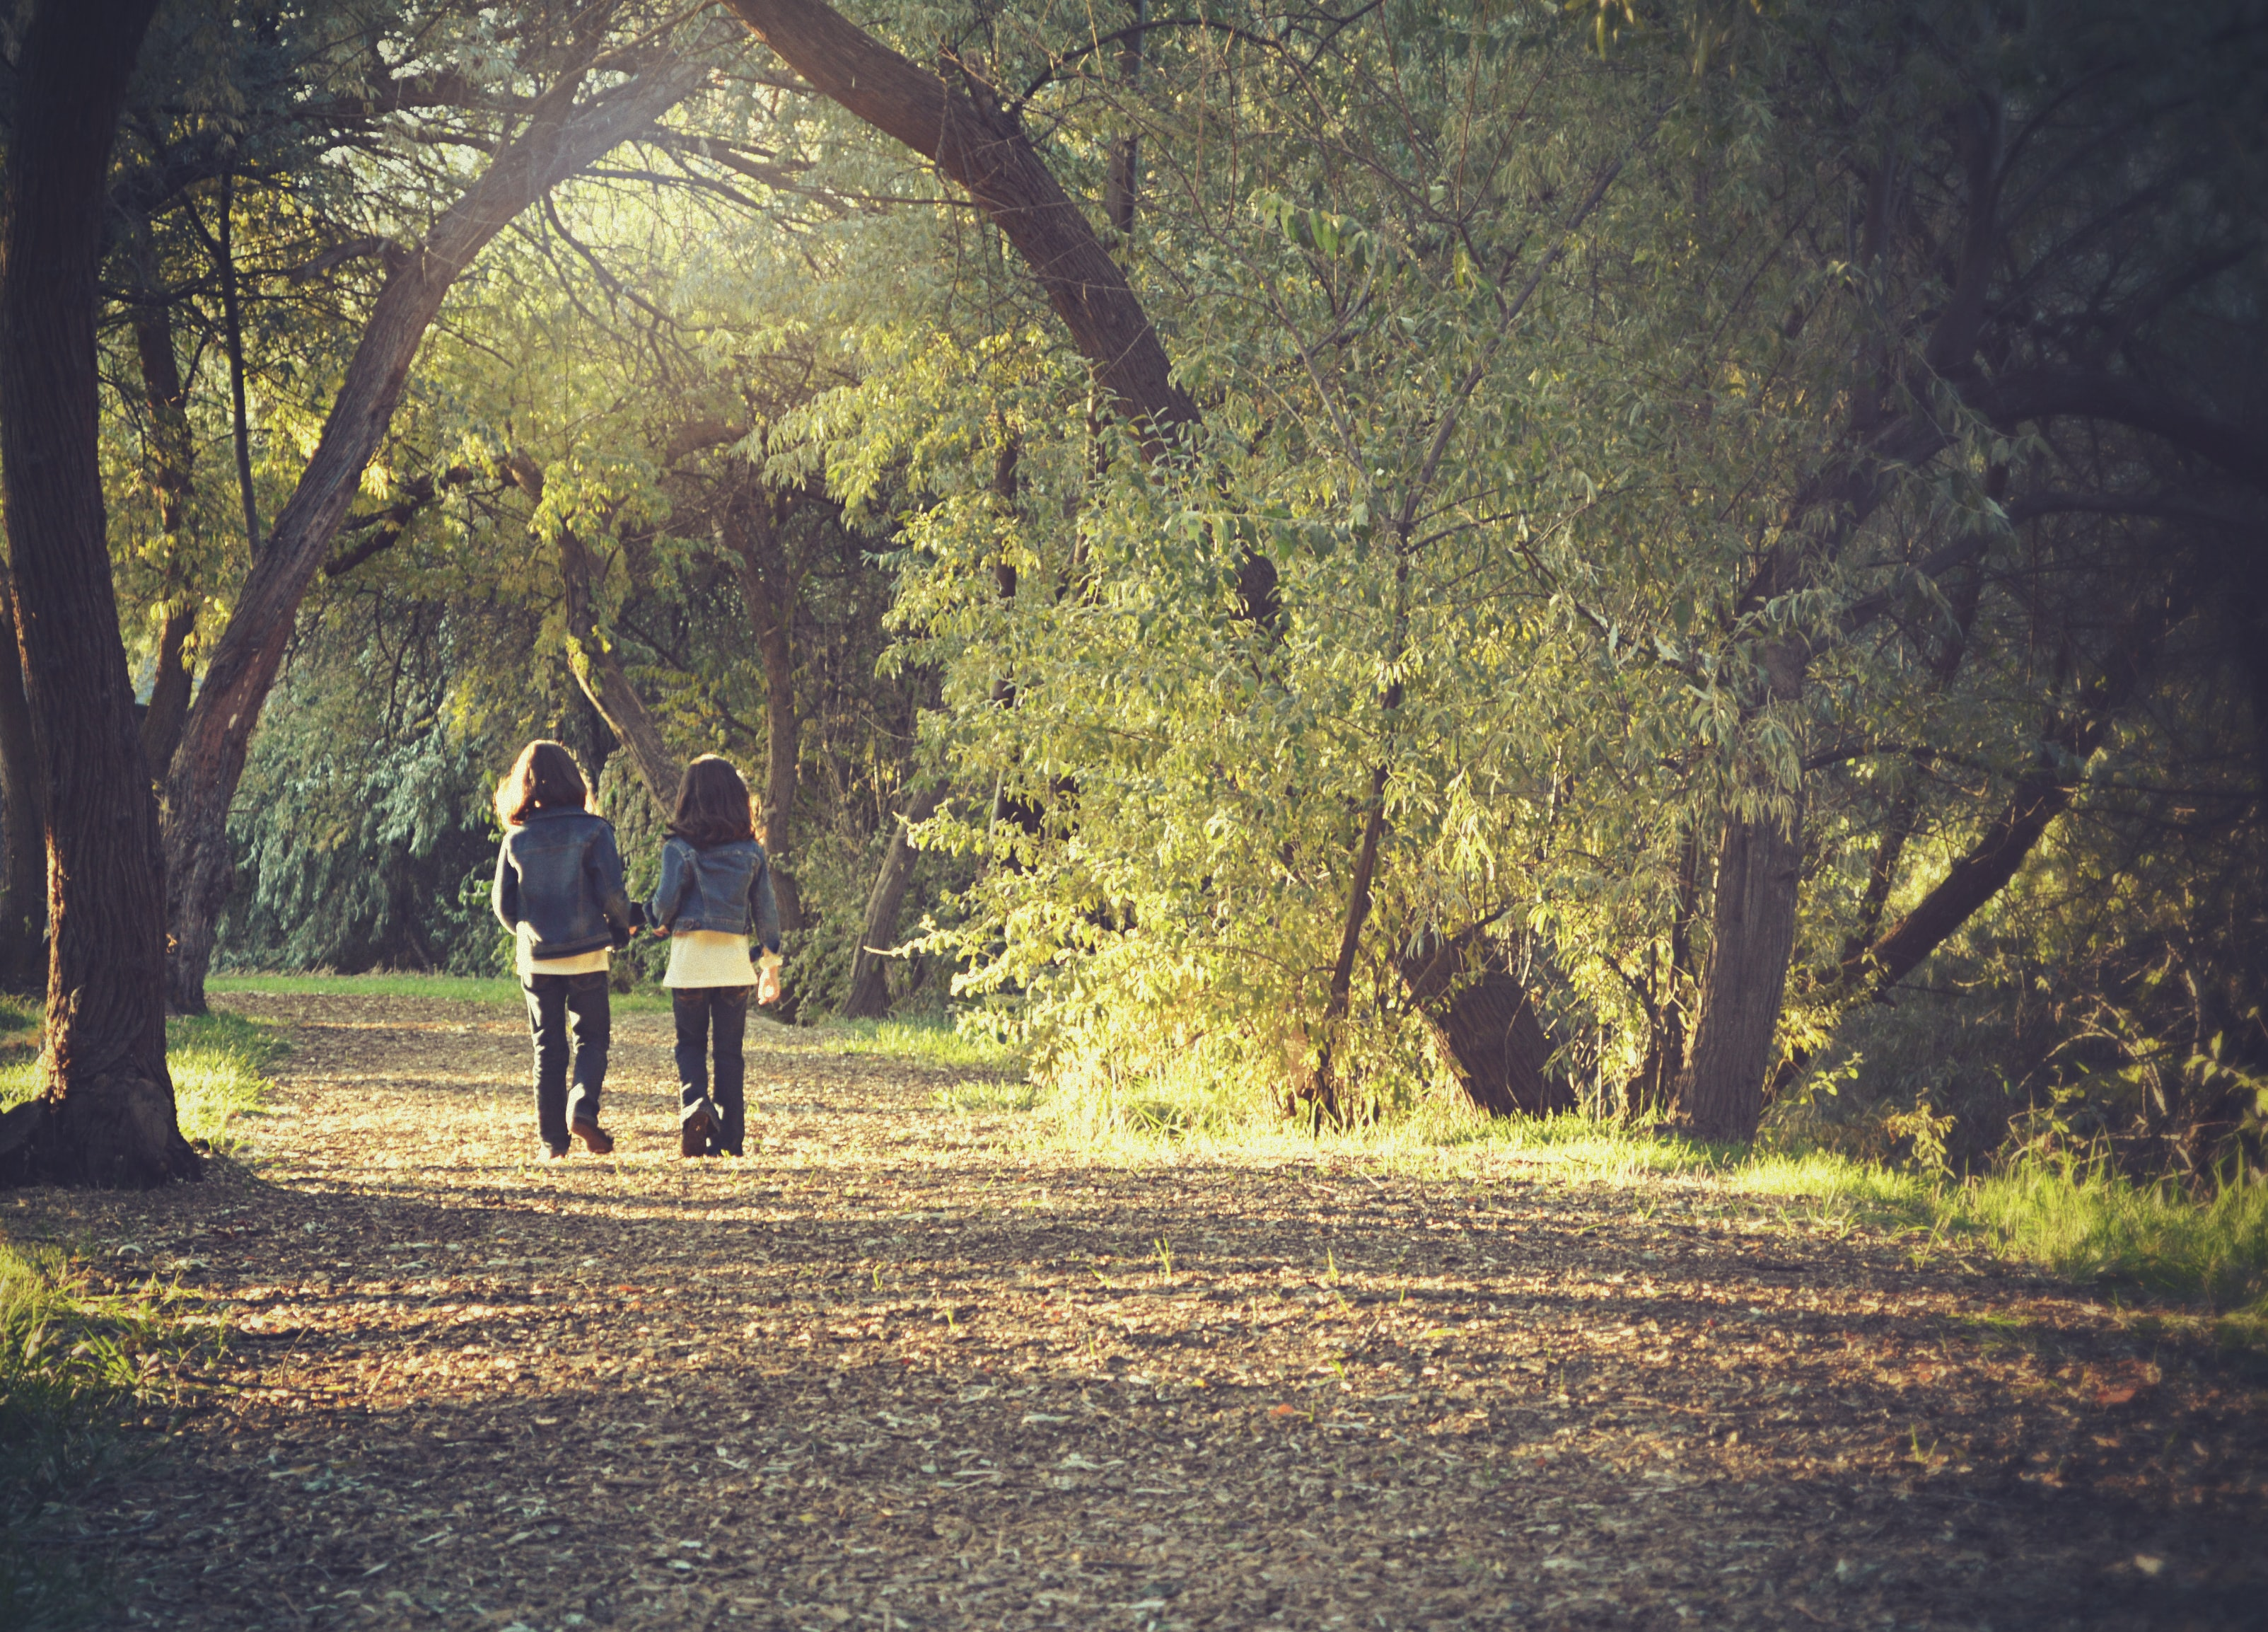 Two kids casually walking through a park path in between the trees